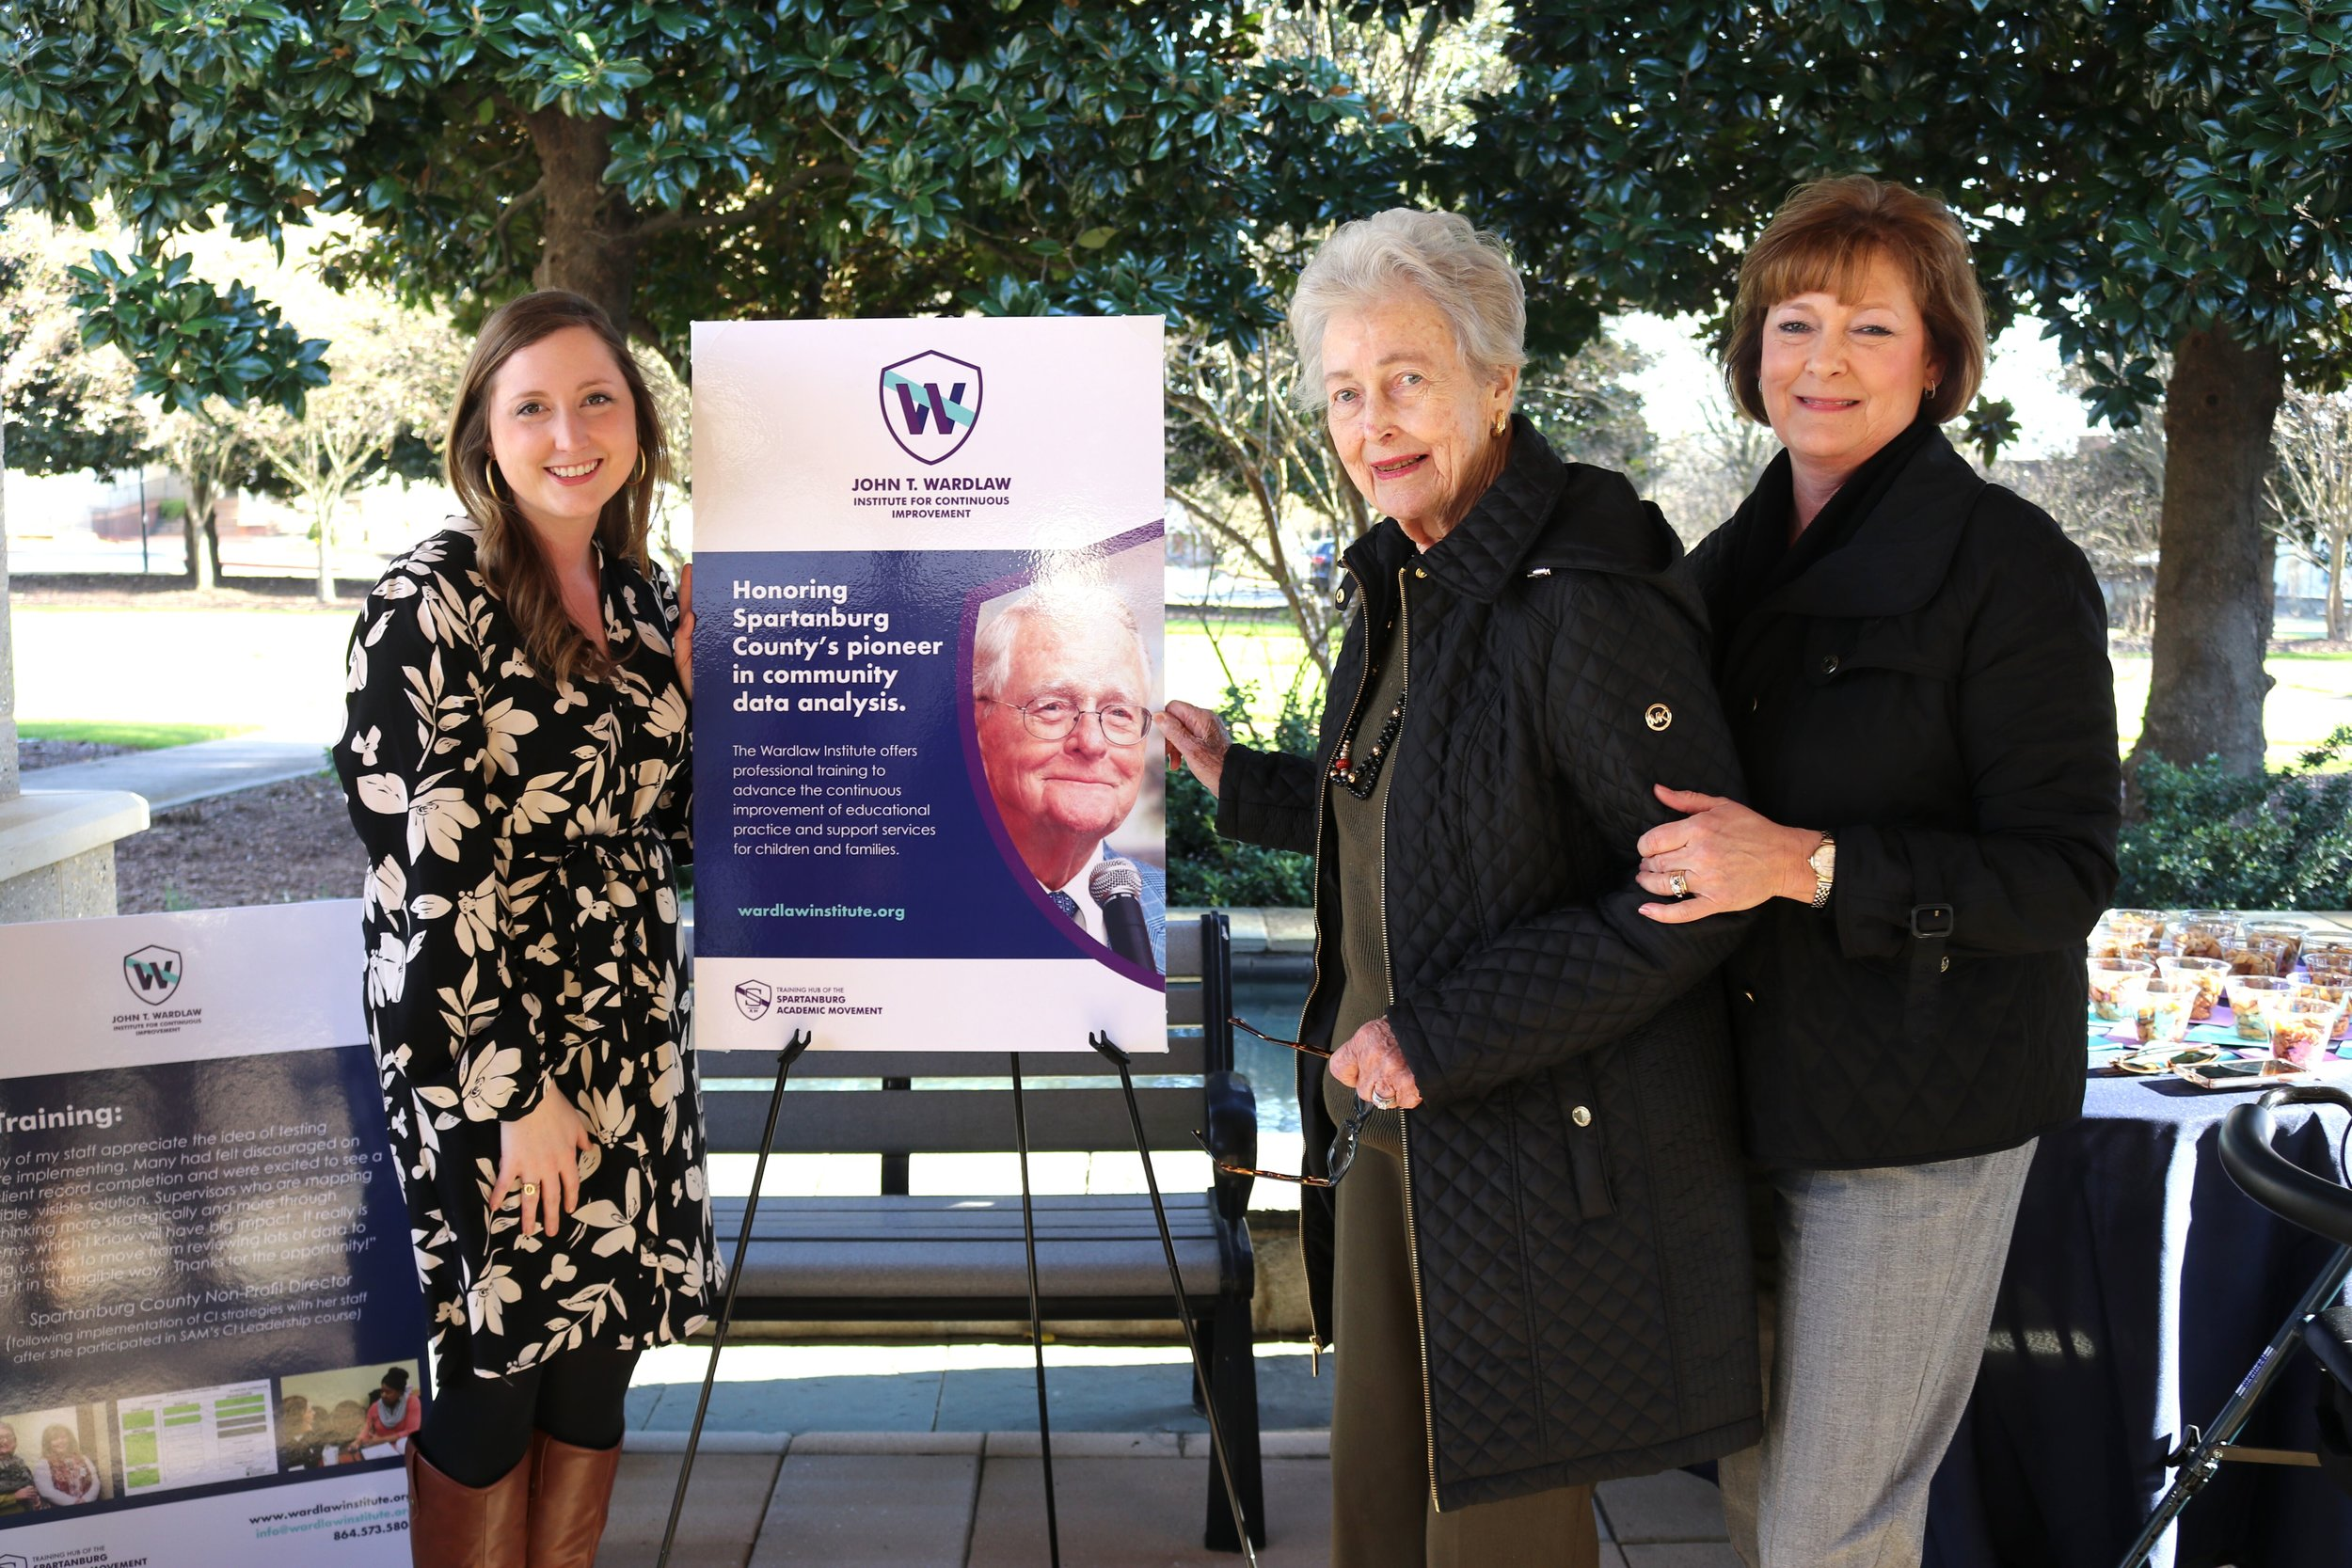 "Members of the Wardlaw Family celebrate the formal launch of the John T. Wardlaw Institute for Continuous Improvement. L-R are: Ms. Ashley McCollum, Mrs. Mary ""Pootsie"" Wardlaw, and Mrs. Saunders McCollum."